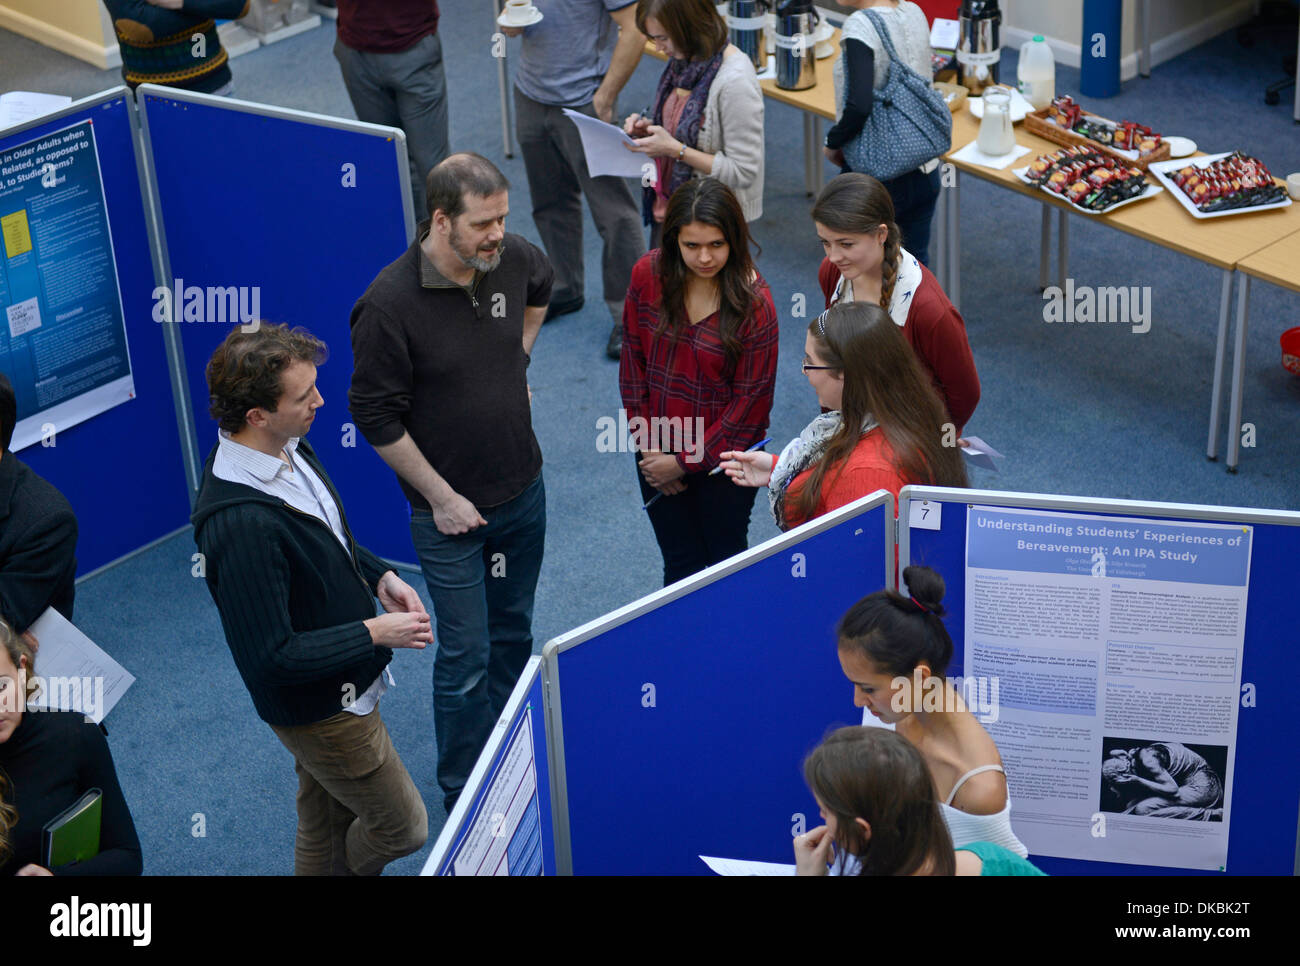 Psychology students present research posters at University of Edinburgh, Scotland. - Stock Image